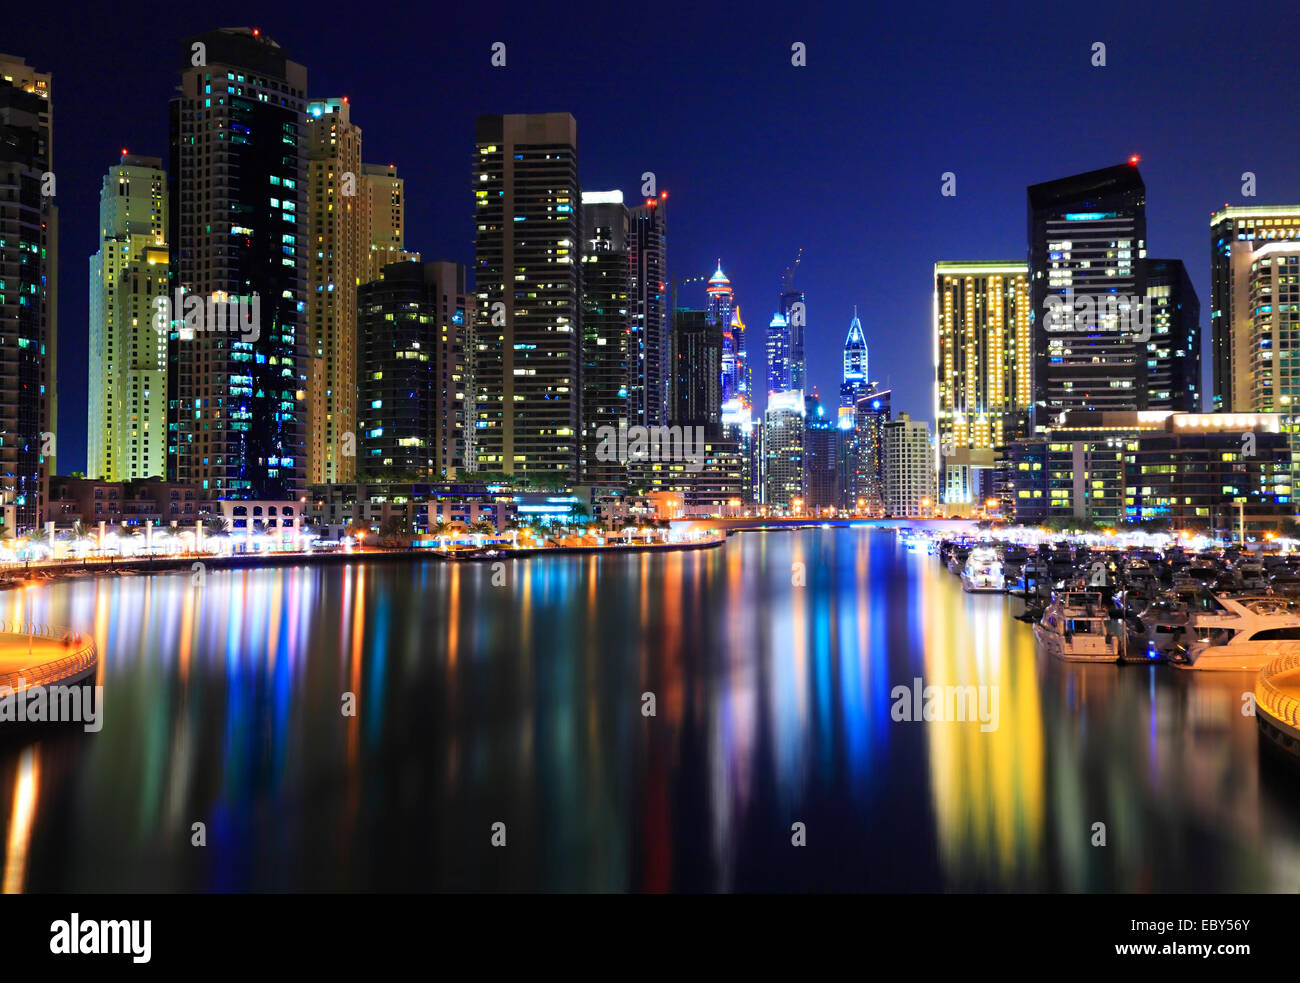 Dubai Marina at night. Reflections of skyscrapers in water - Stock Image